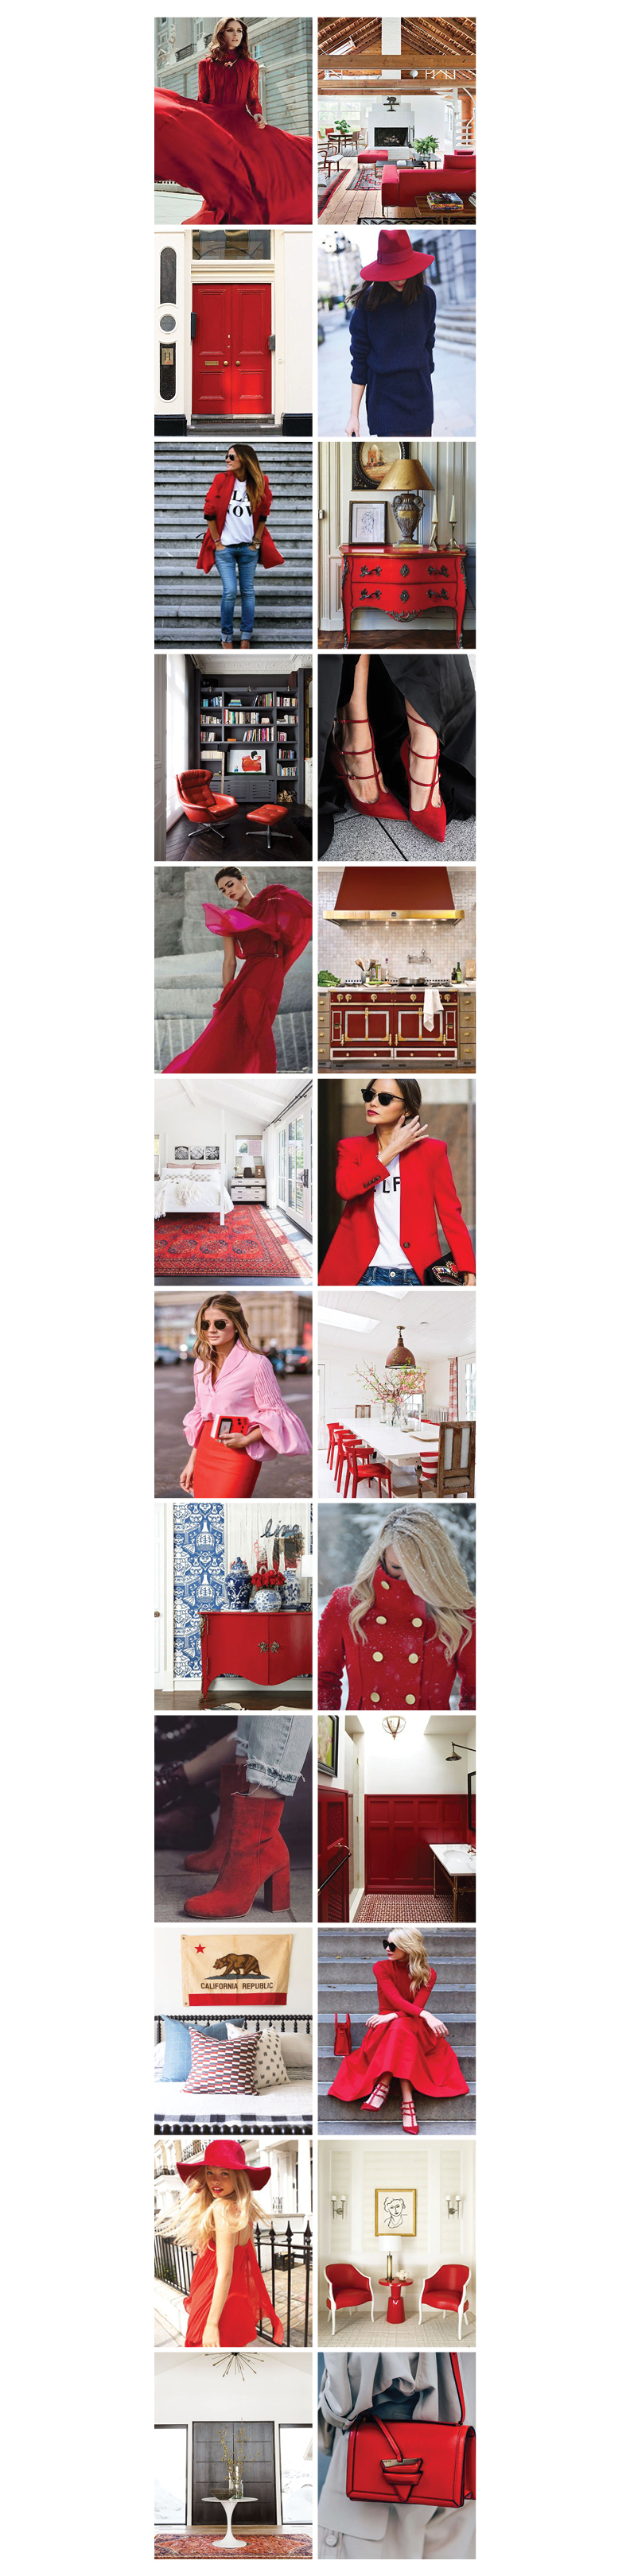 Long Images Layout - Power Red.jpg